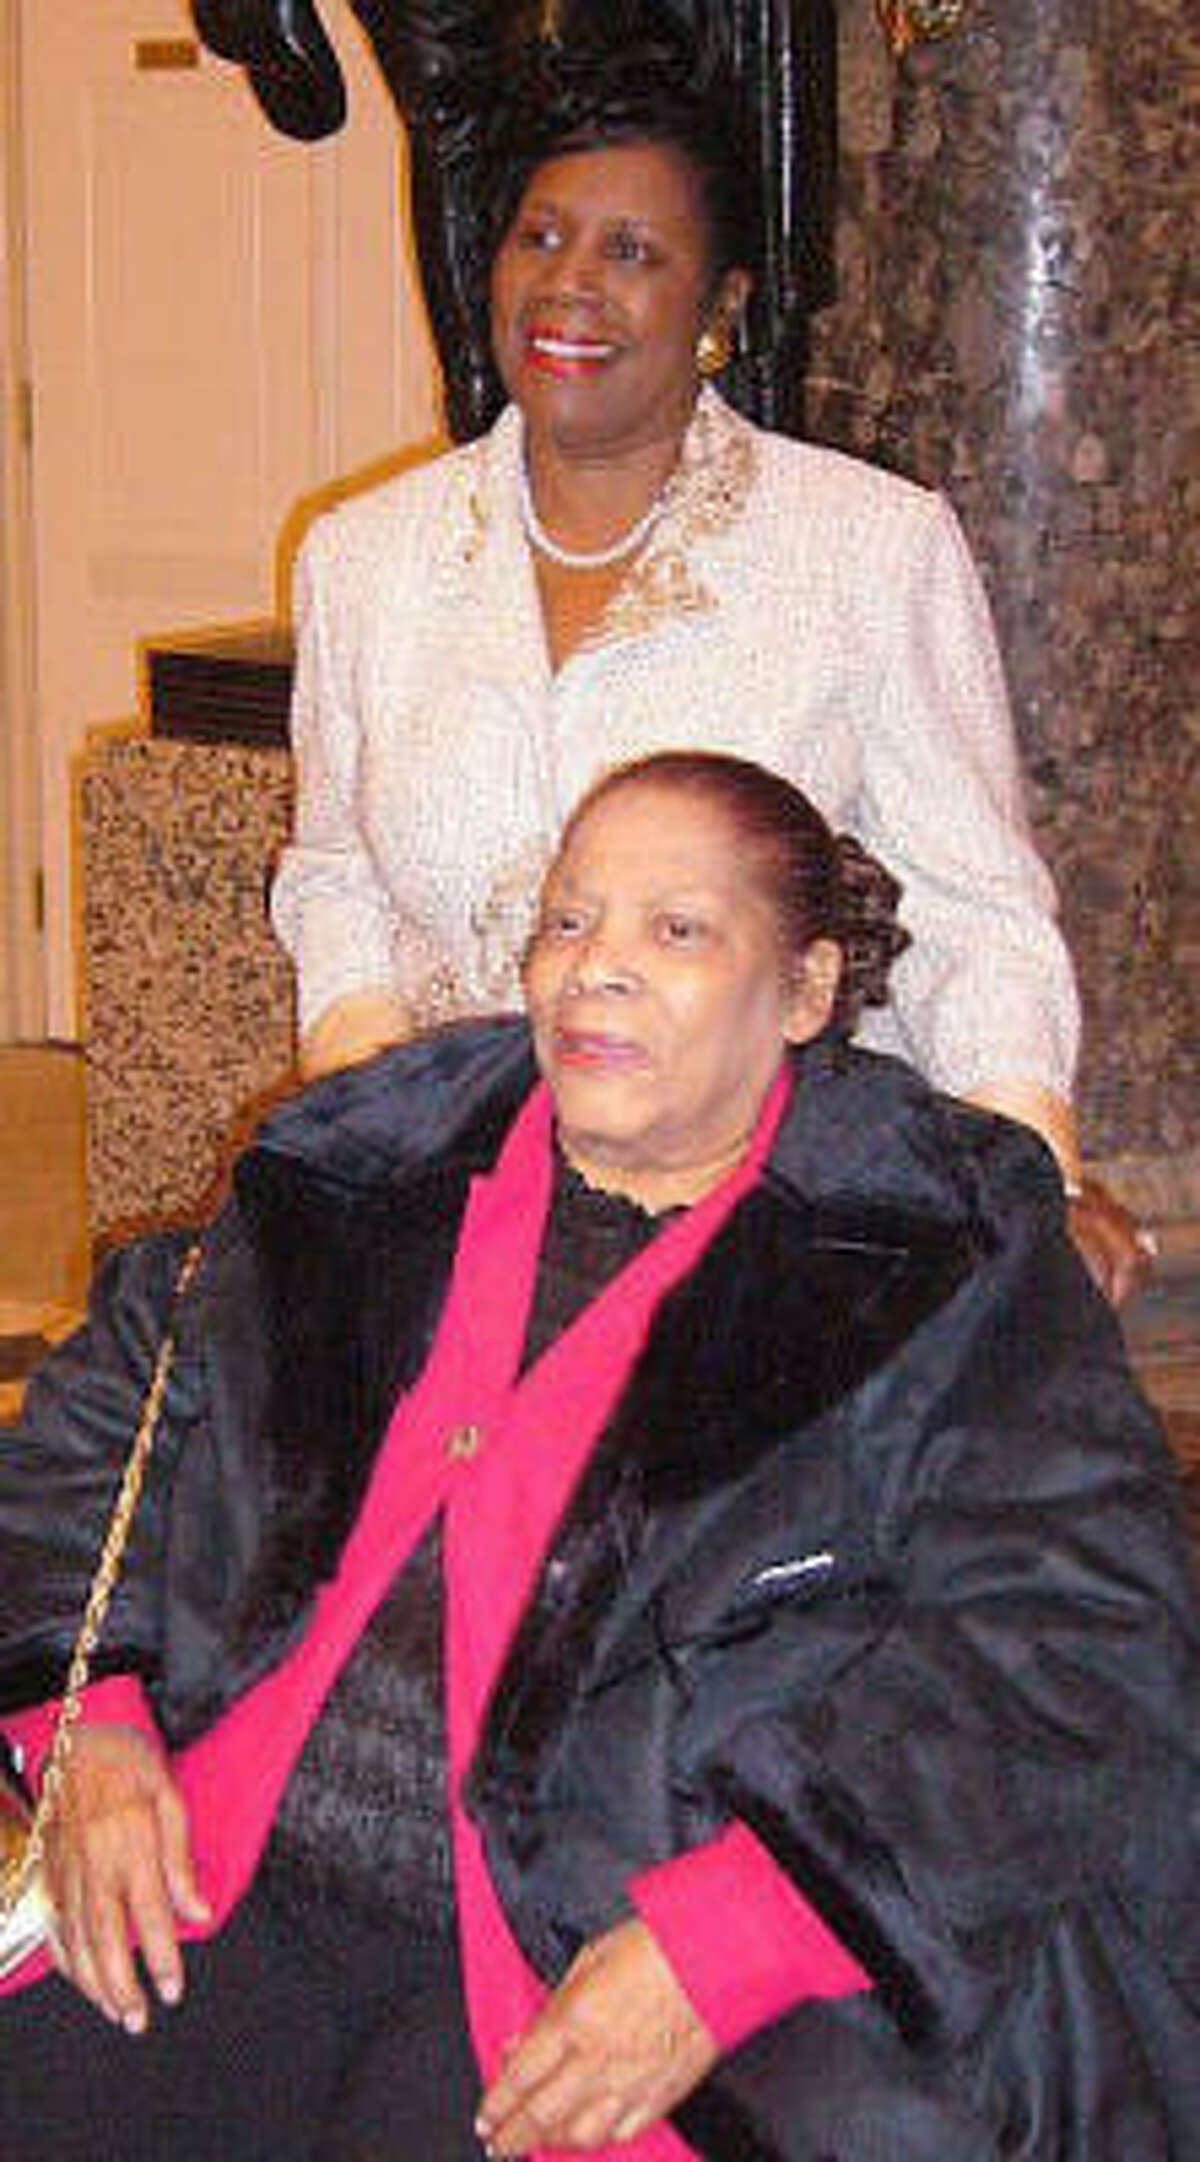 Ivalita Jackson visited the U.S. Capitol in Washington with her daughter, Rep. Sheila Jackson Lee, of Houston.